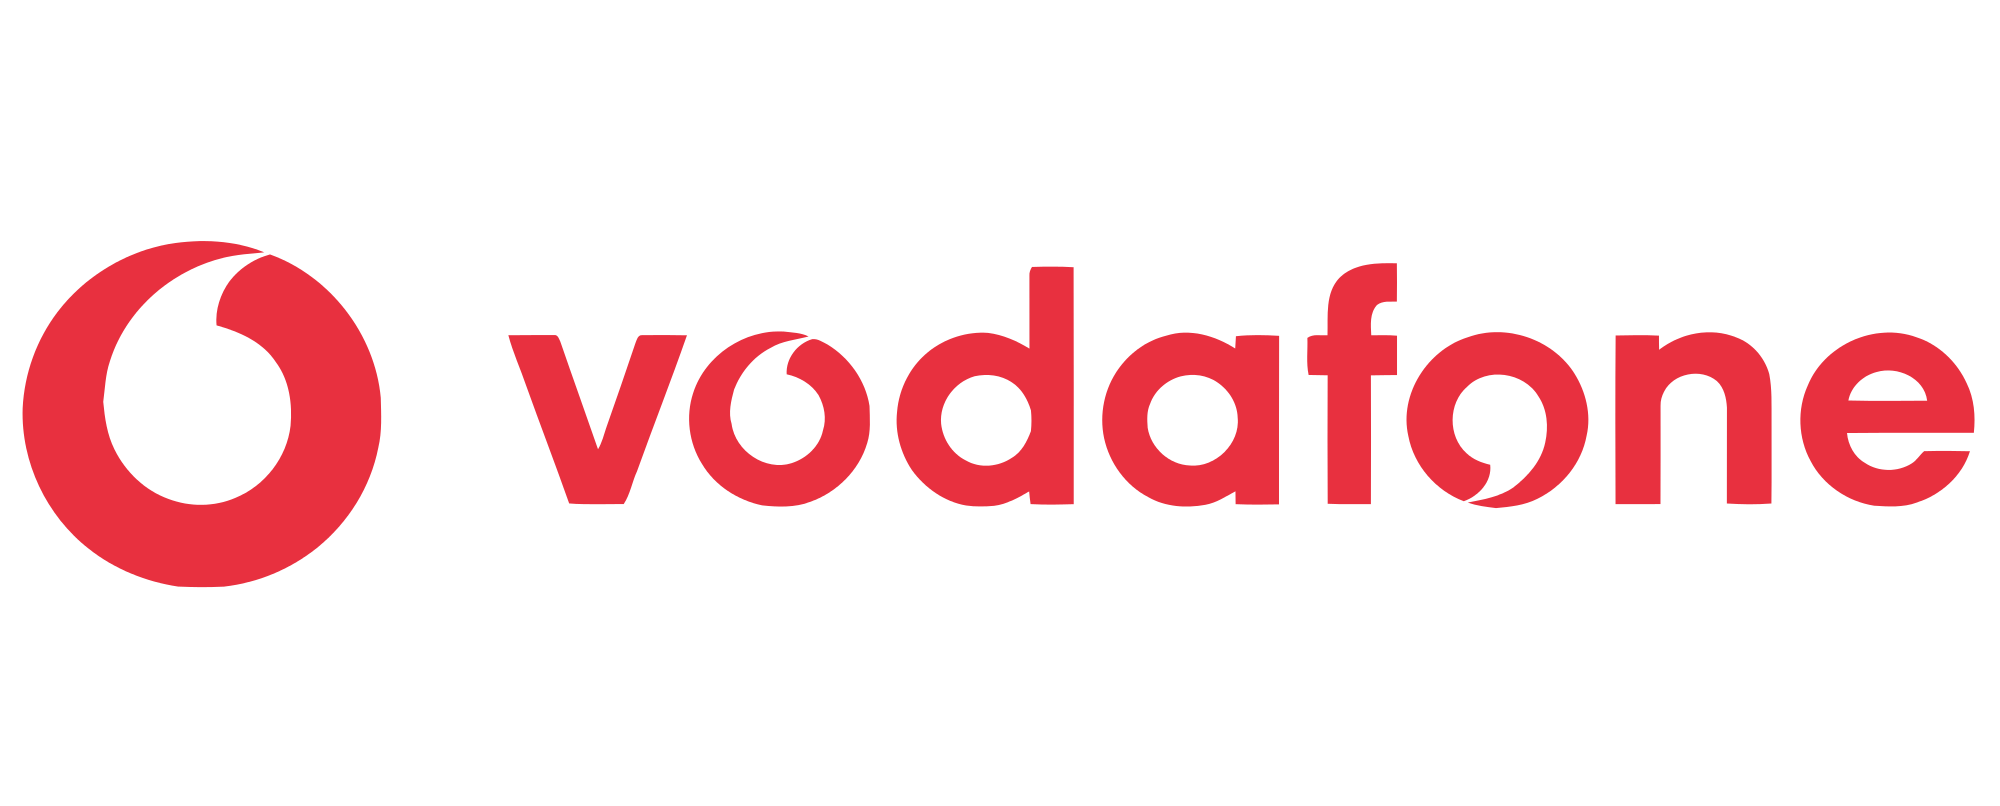 NEW VODAFONE LOGO PNG 2019 · eDigital.